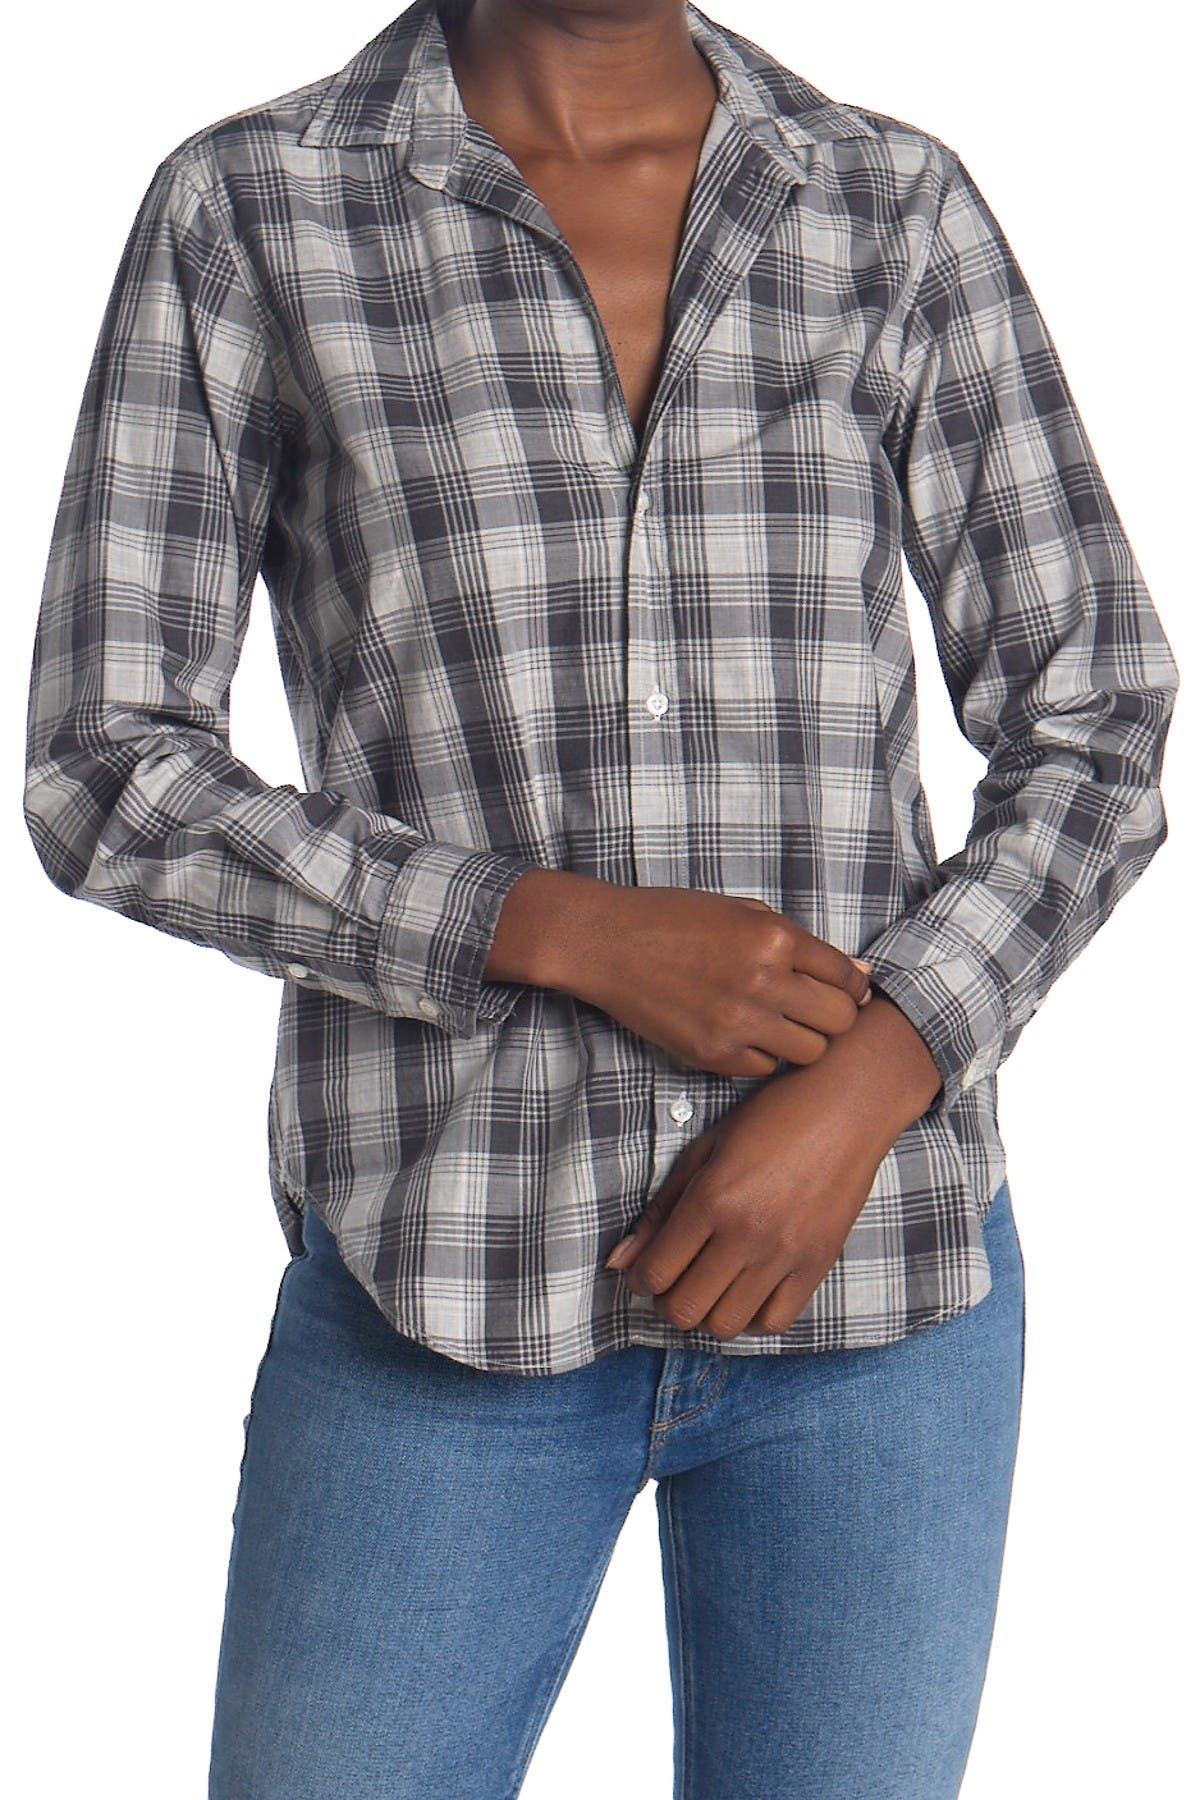 Image of FRANK & EILEEN Frank Plaid Tailored Fit Tunic Shirt